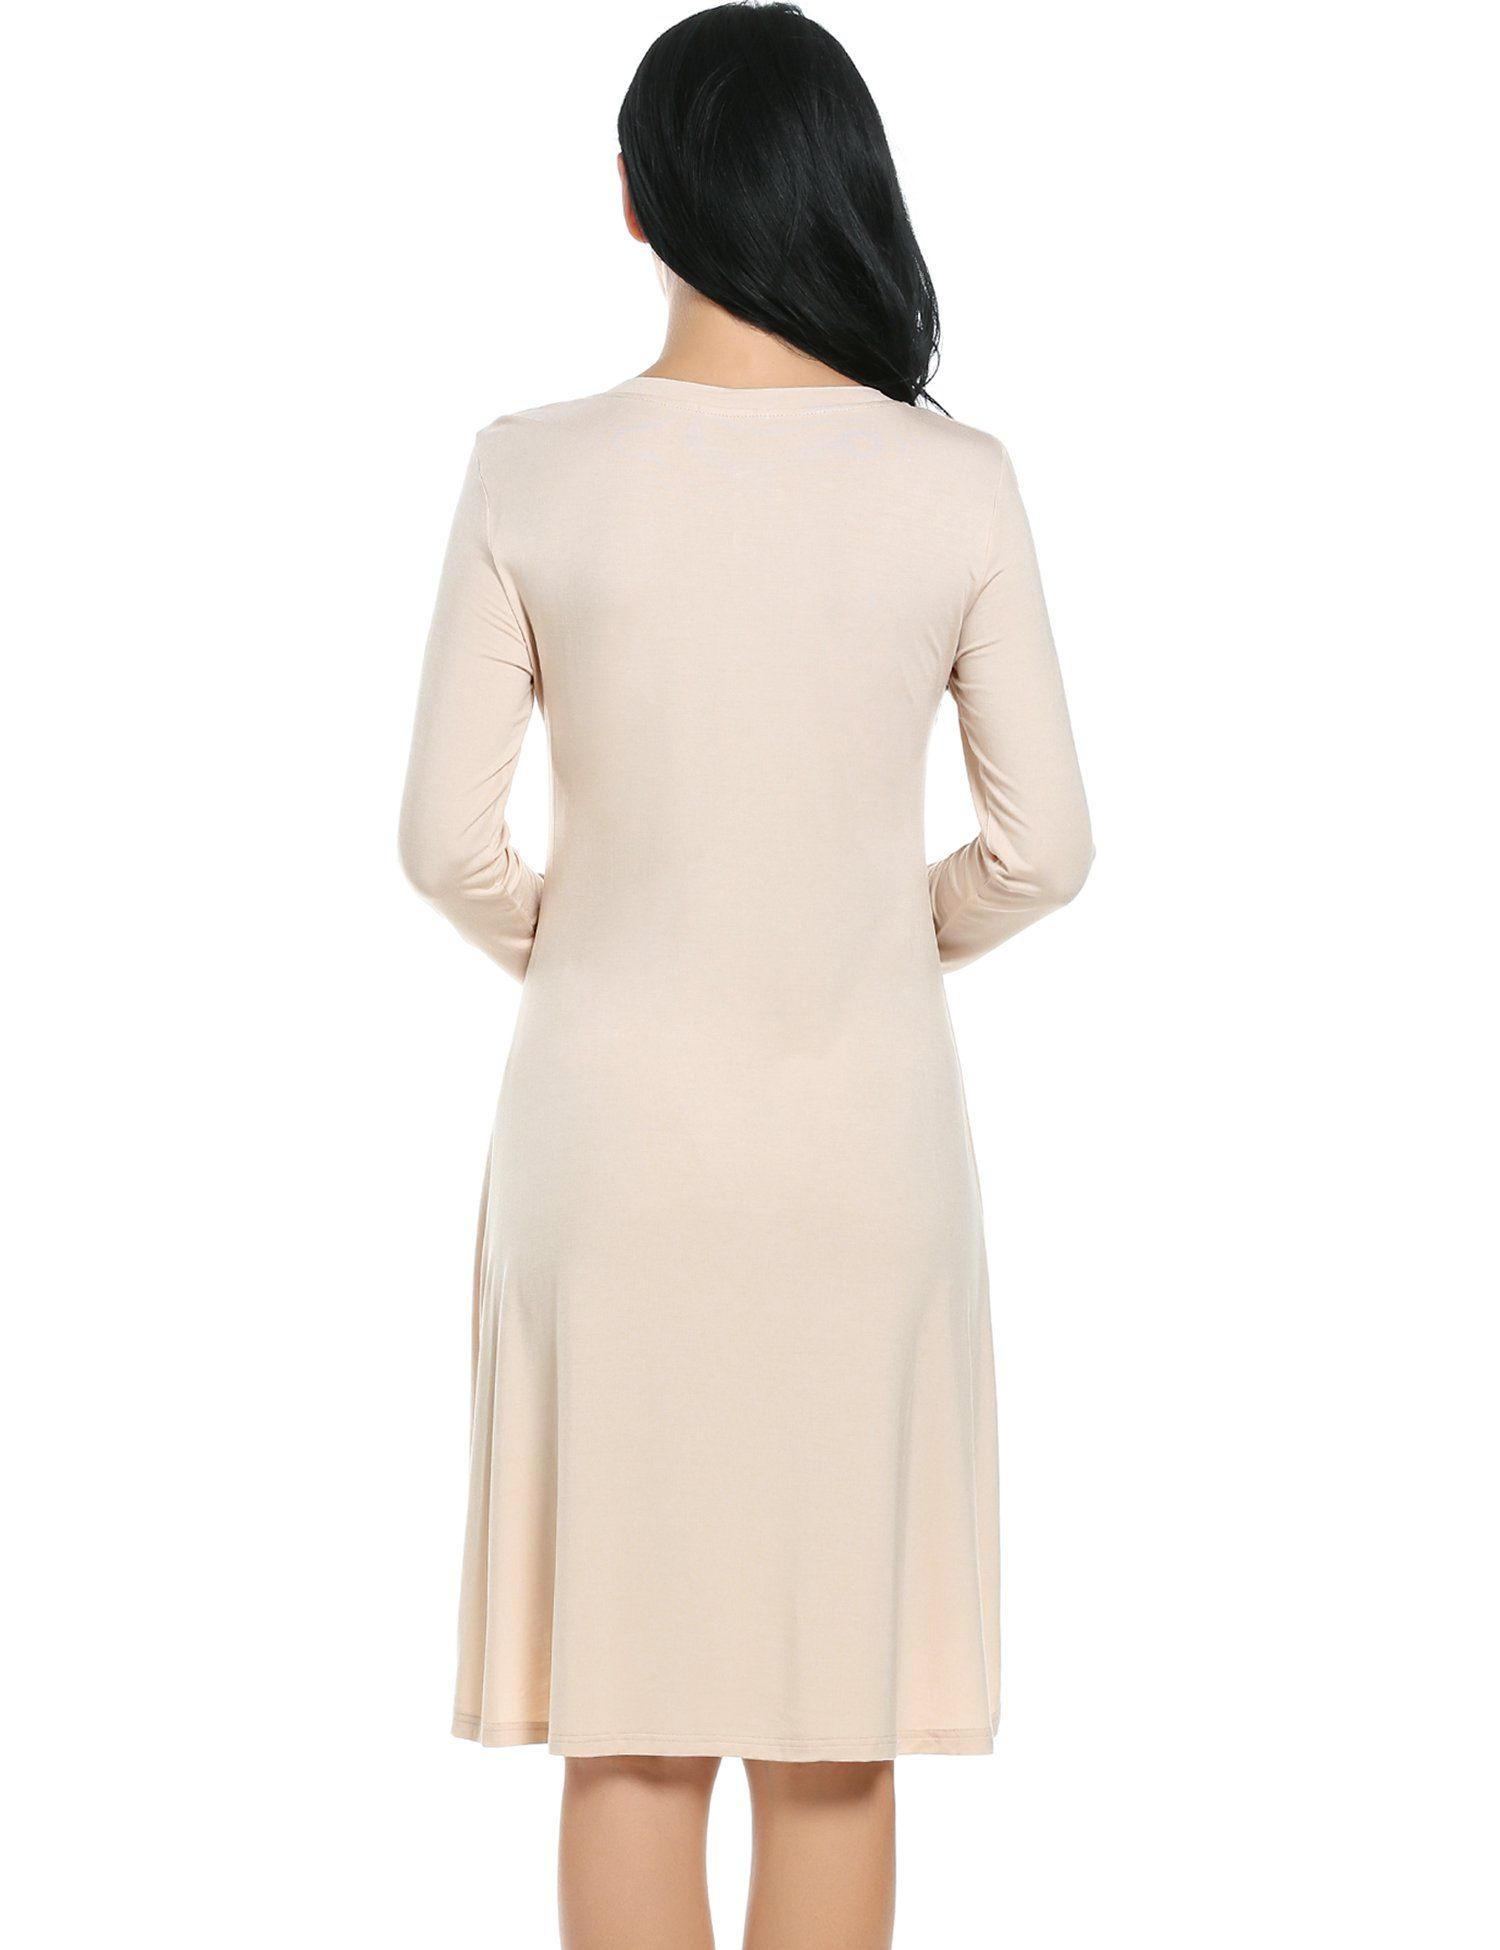 336c3e8f3fa Ekouaer Womens Nightwear Modal Long Sleeve Sleep Dress Apricot Small *  Check this awesome product by going to the link at the image.